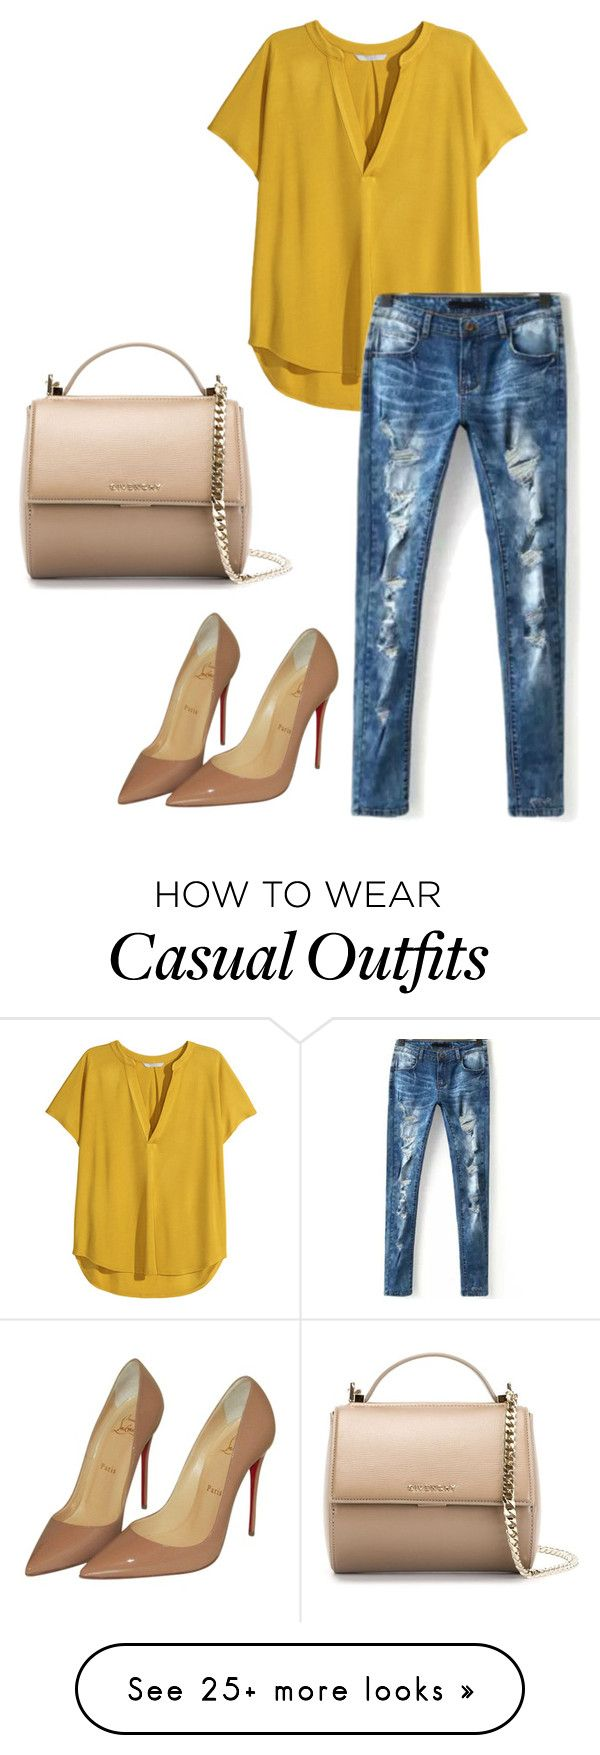 Featuring H&M, Christian Louboutin, Givenchy and CasualChic